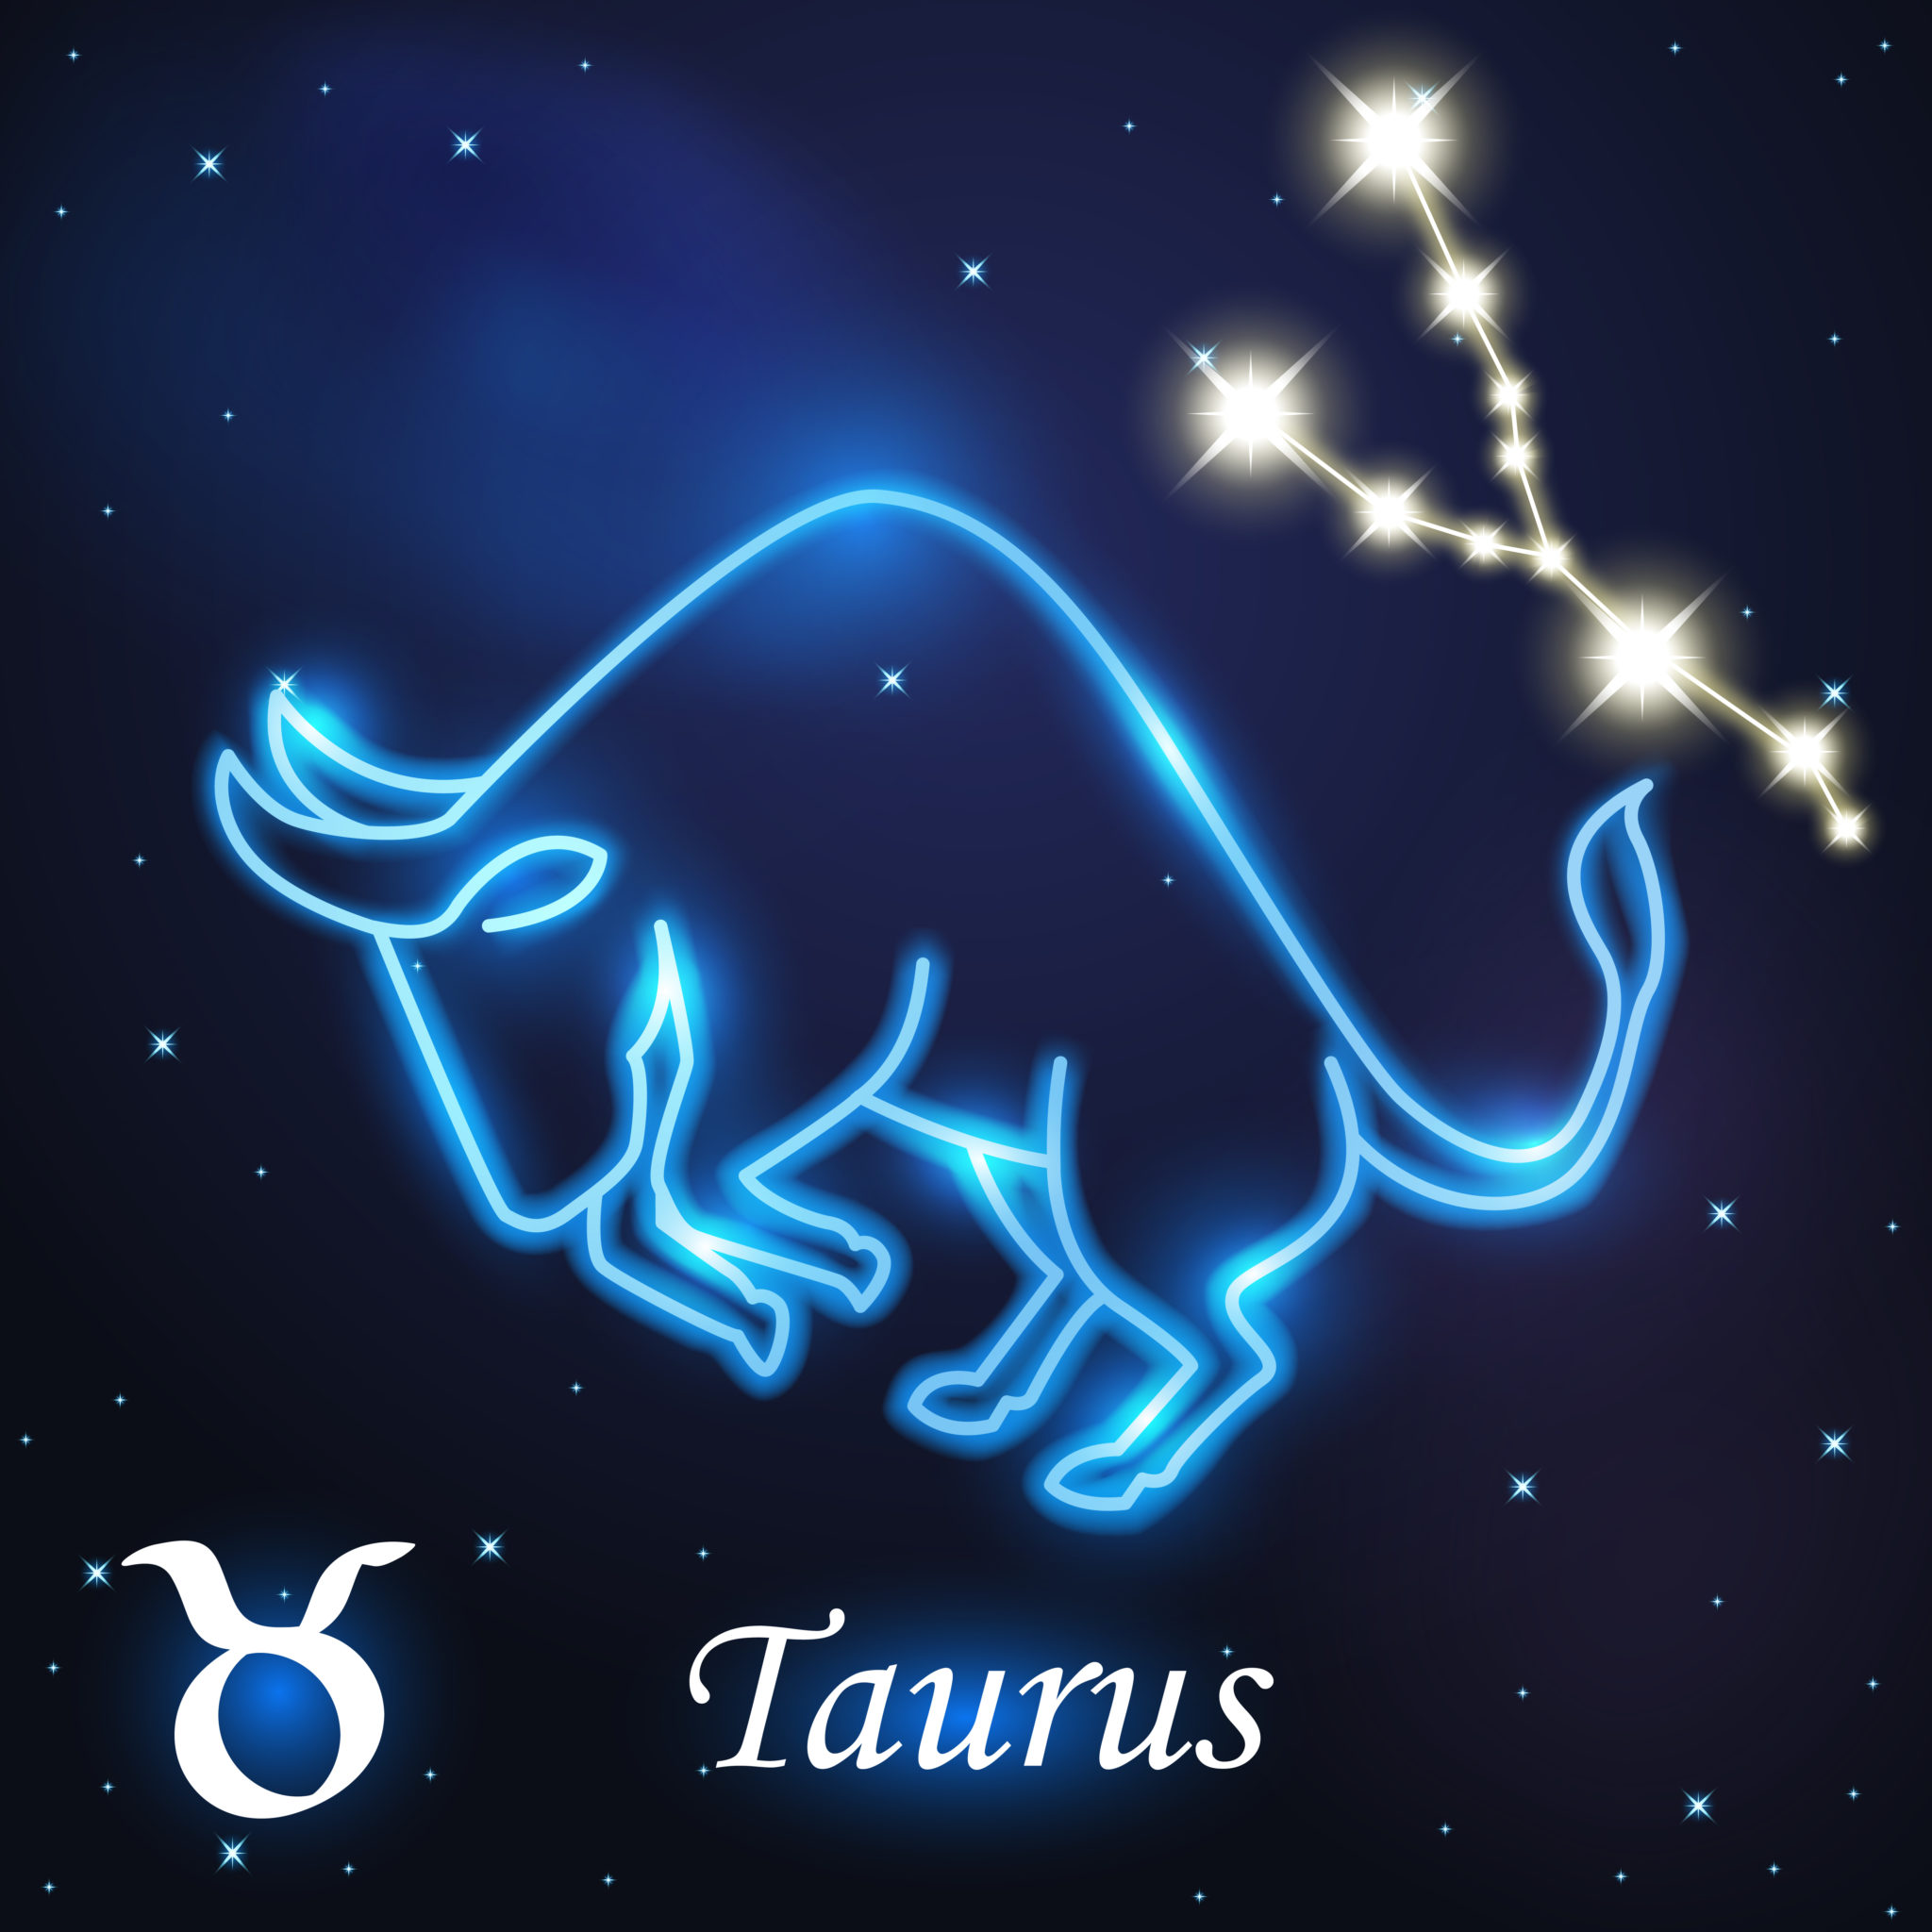 10 Reasons Taurus is the Worst Zodiac Sign